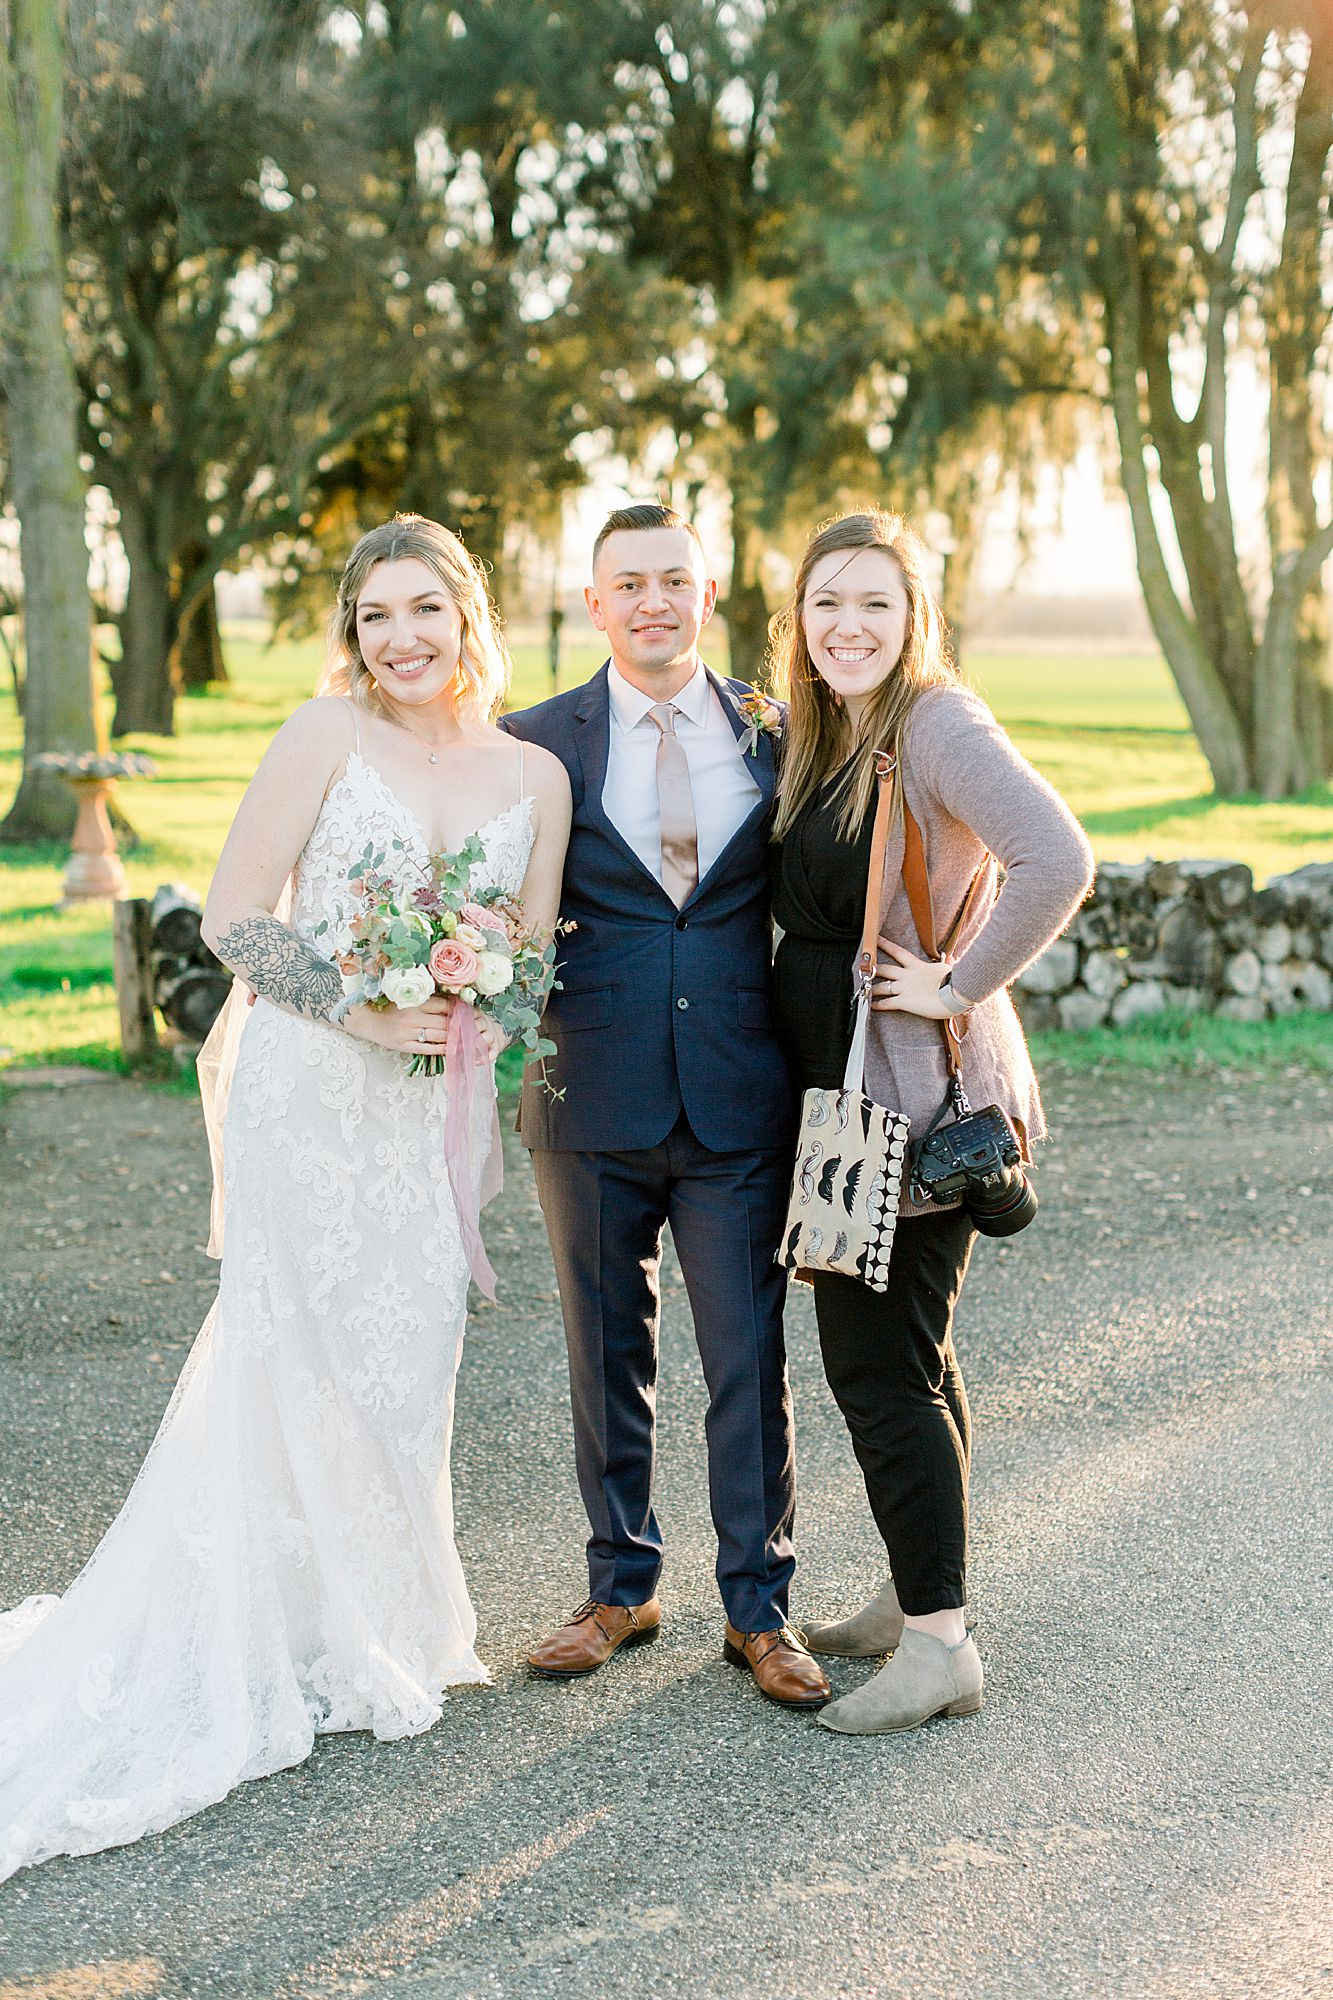 Inn at Park Winters Wedding - Lindsay and Shane - Ashley Baumgartner - Park Winters Wedding Photographer - Sacramento Wedding Photographer_0082.jpg